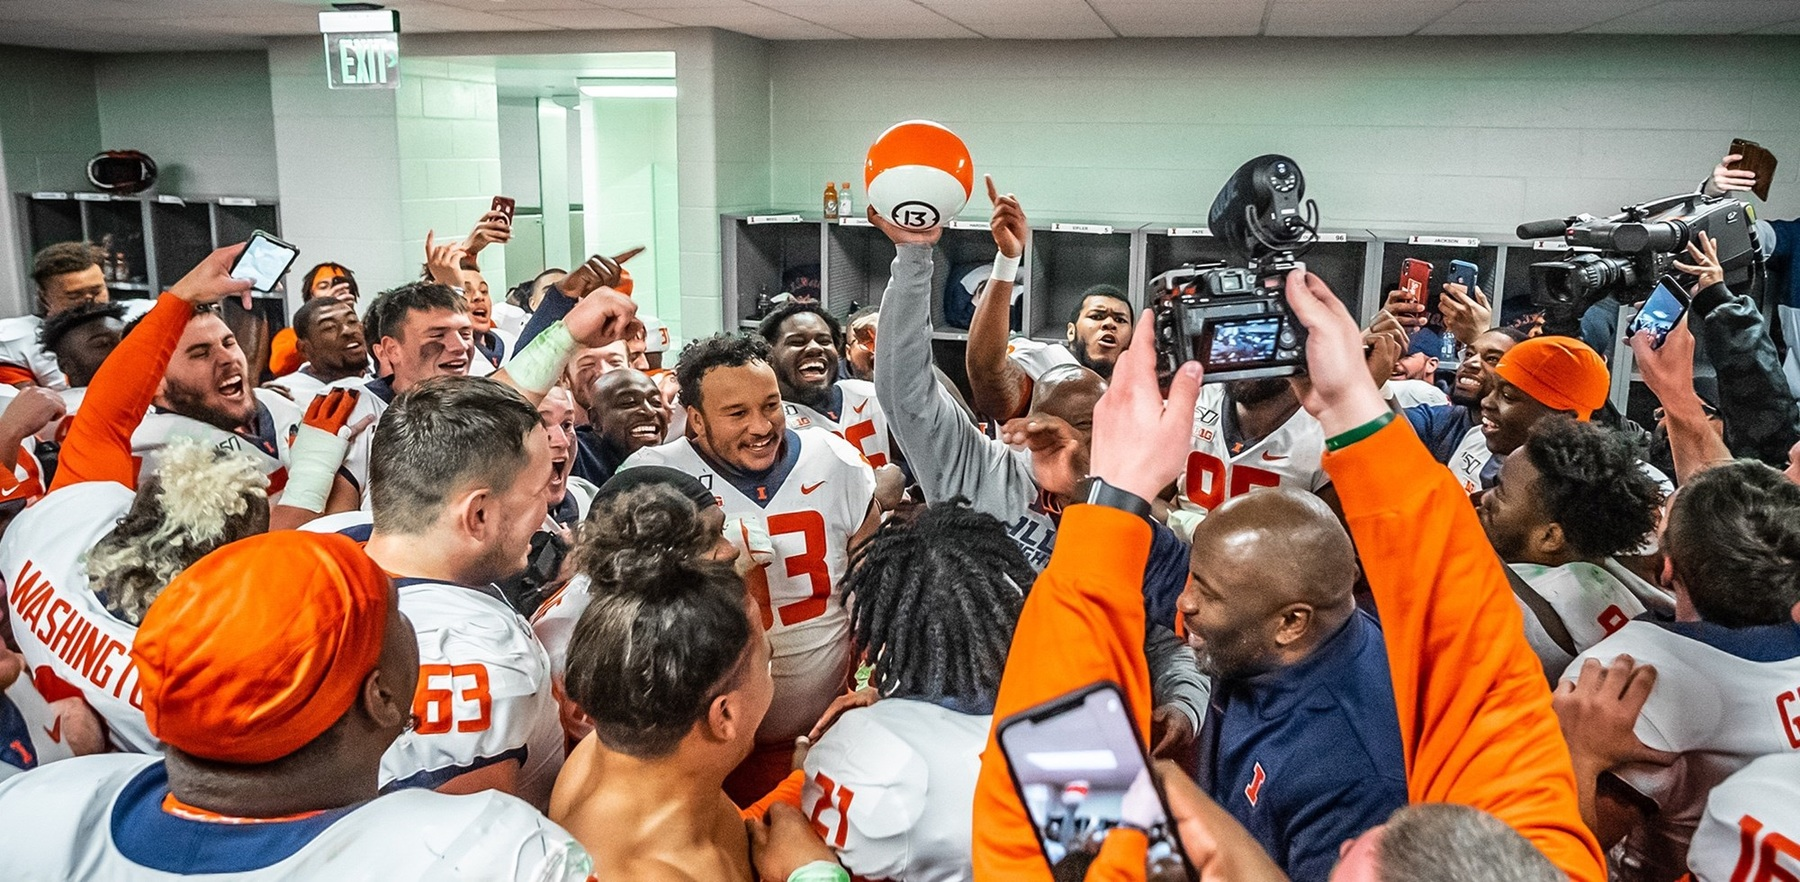 Coach Smith and team celebrate in the locker room following Saturday's win. Smith holds up an orange and white  bowling ball